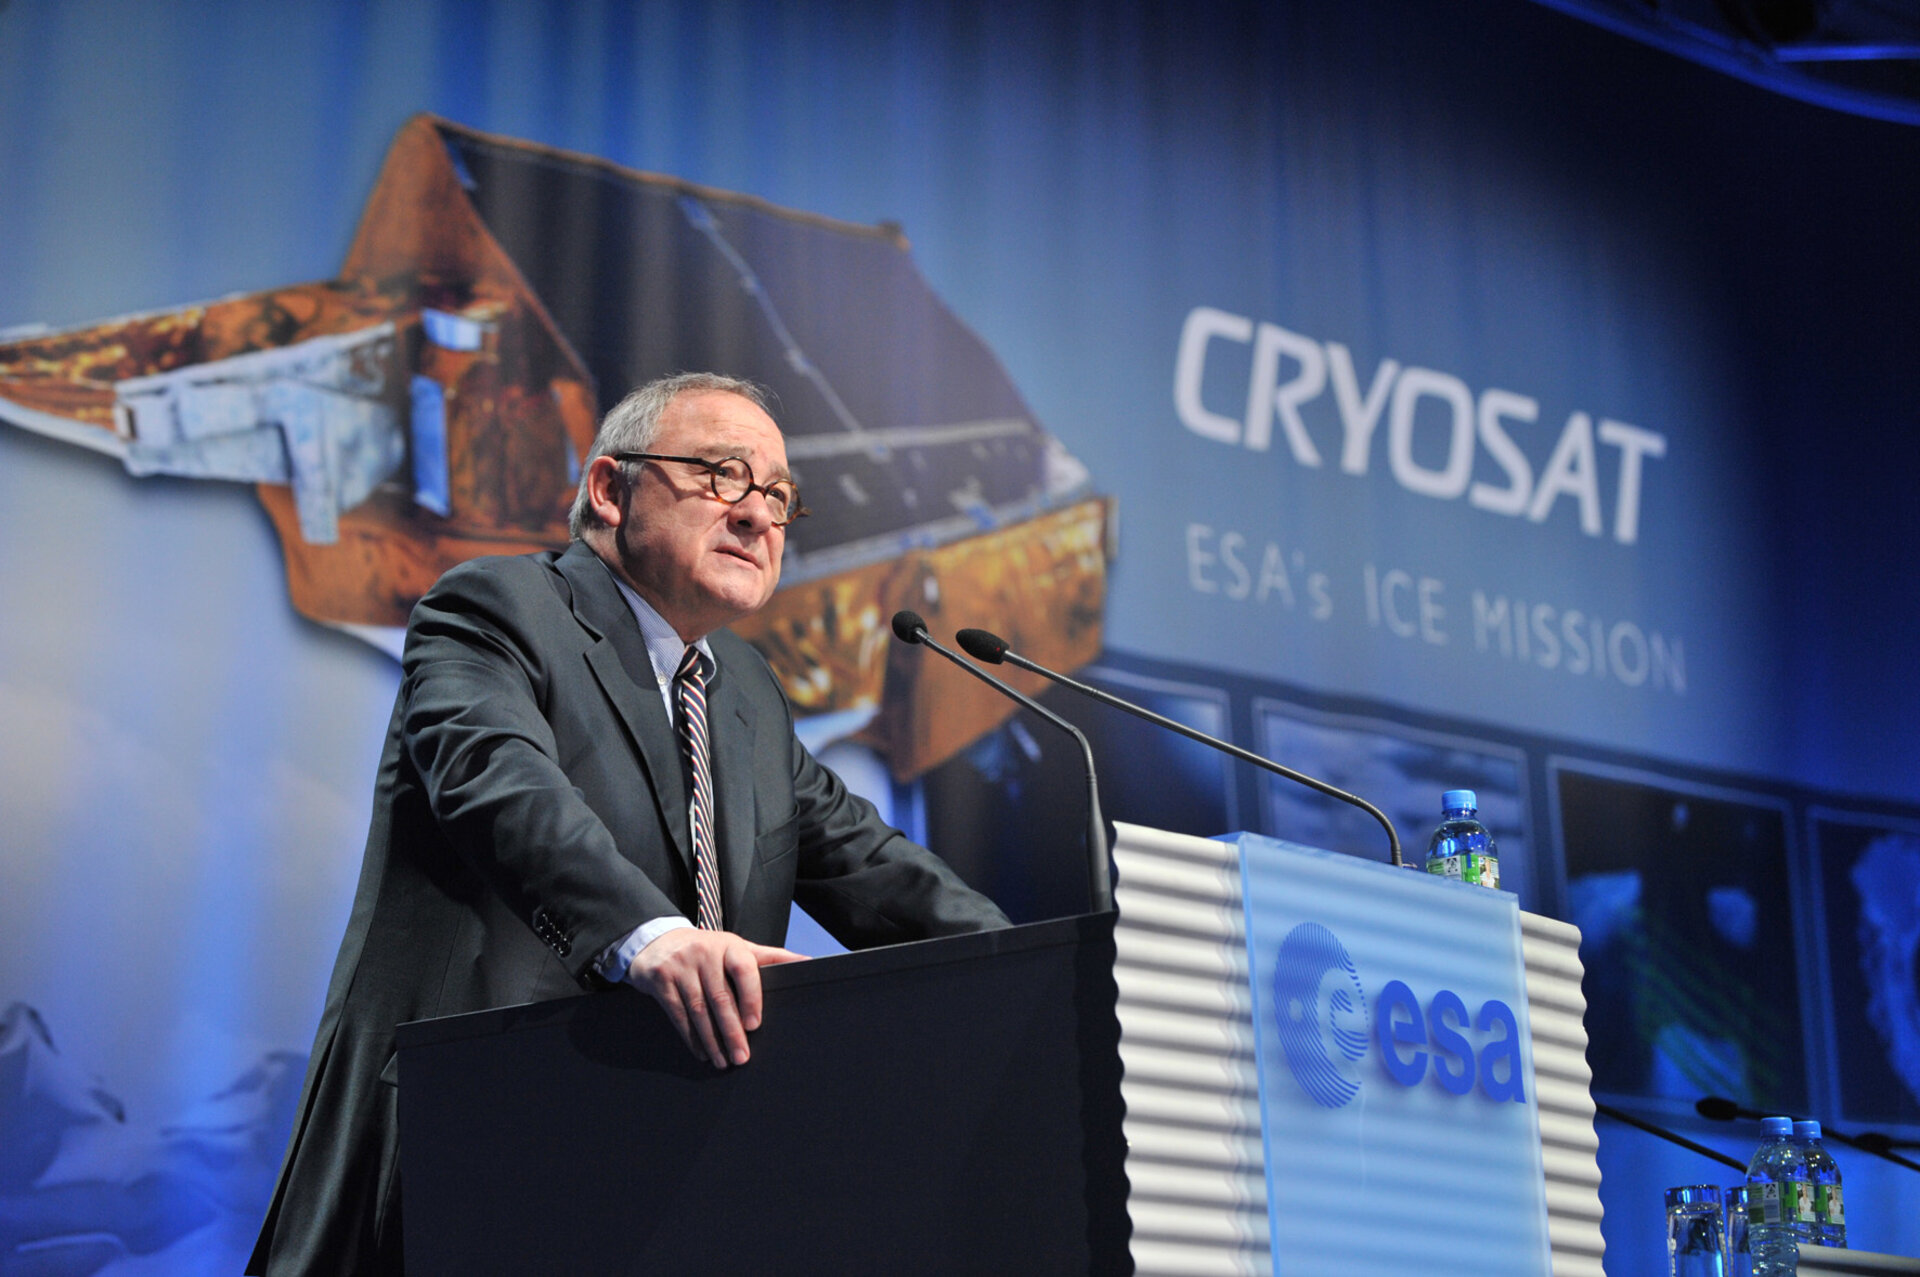 ESA DG Jean-Jacques Dordain addresses the audience at ESA/ESOC on the occasion of the launch of Cryosat 2 on 8 April 2010